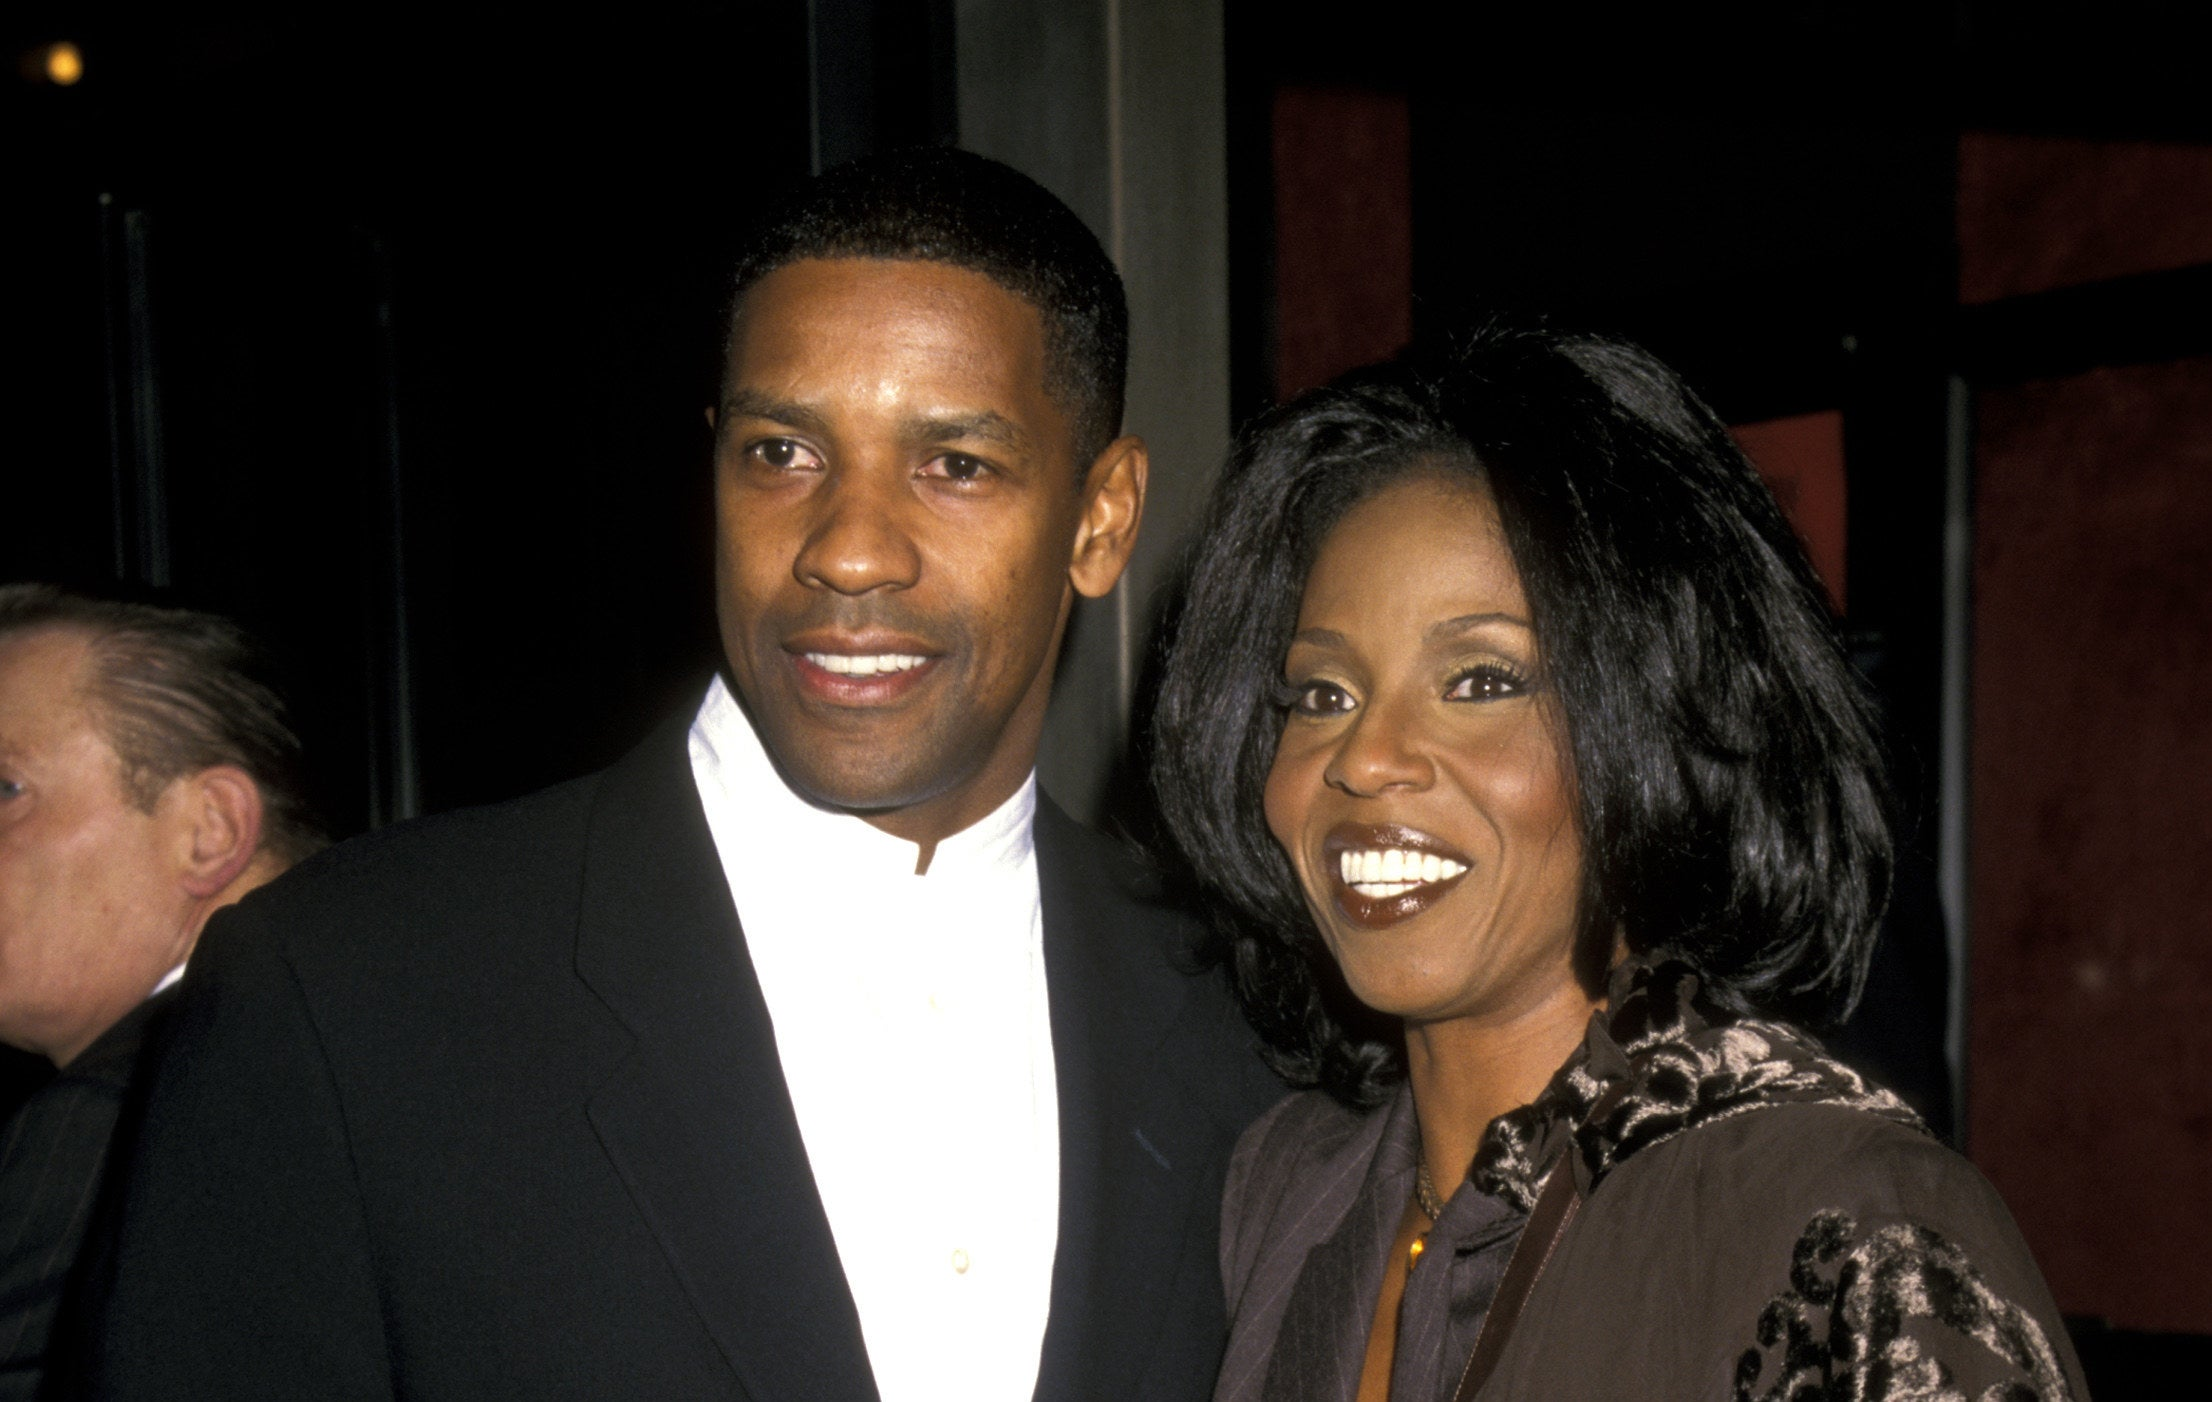 Denzel with his wife at a movie premiere